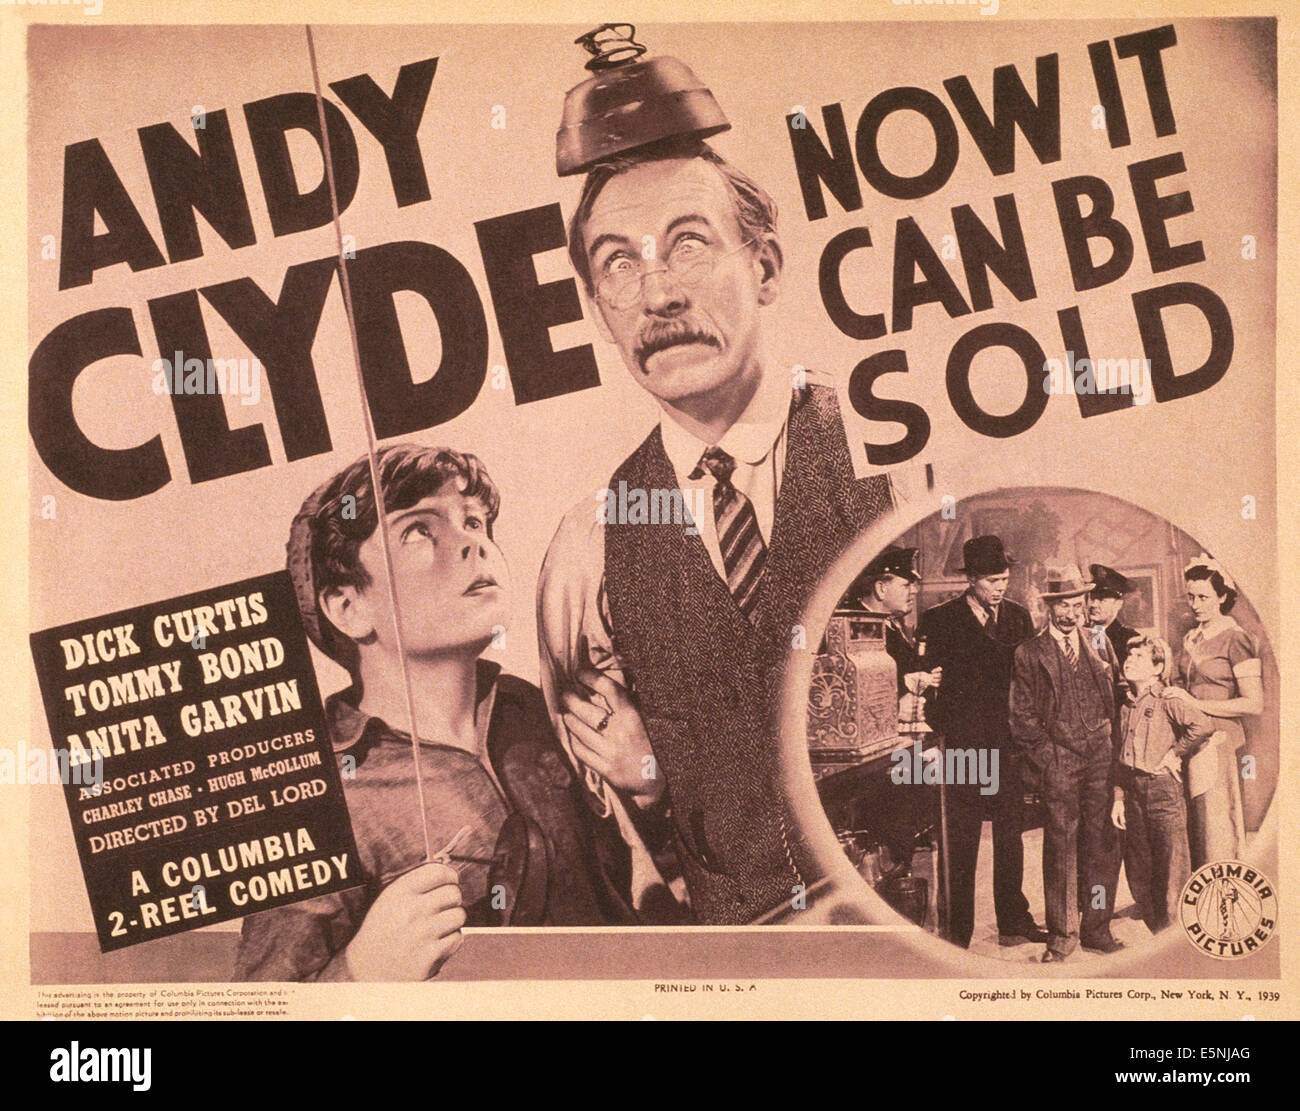 NOW IT CAN BE SOLD, US poster, from left: Tommy Bond, Andy Clyde, 1939 - Stock Image